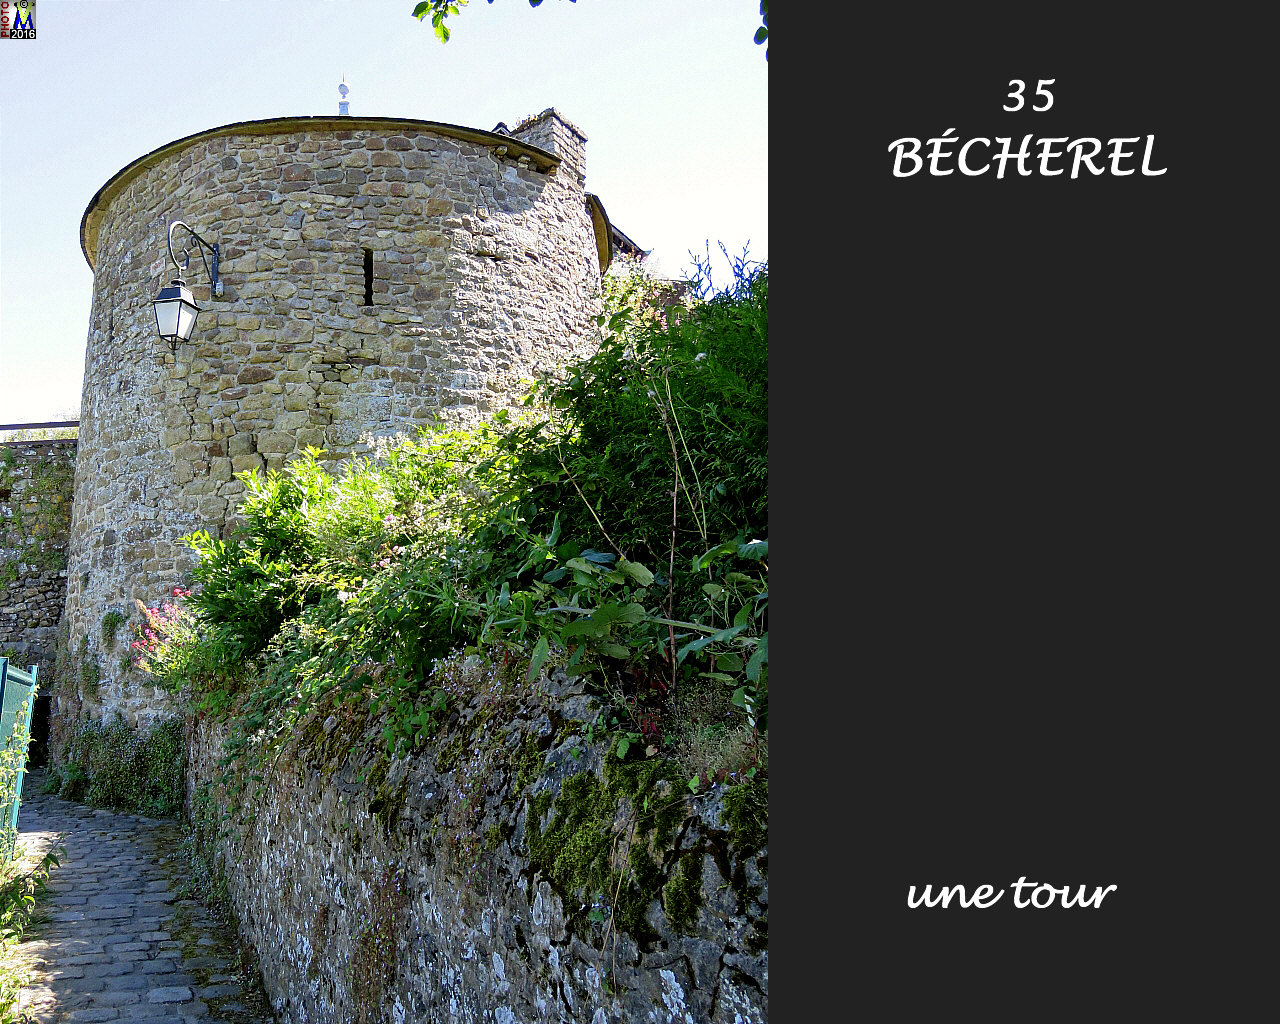 35BECHEREL_tour_100.jpg